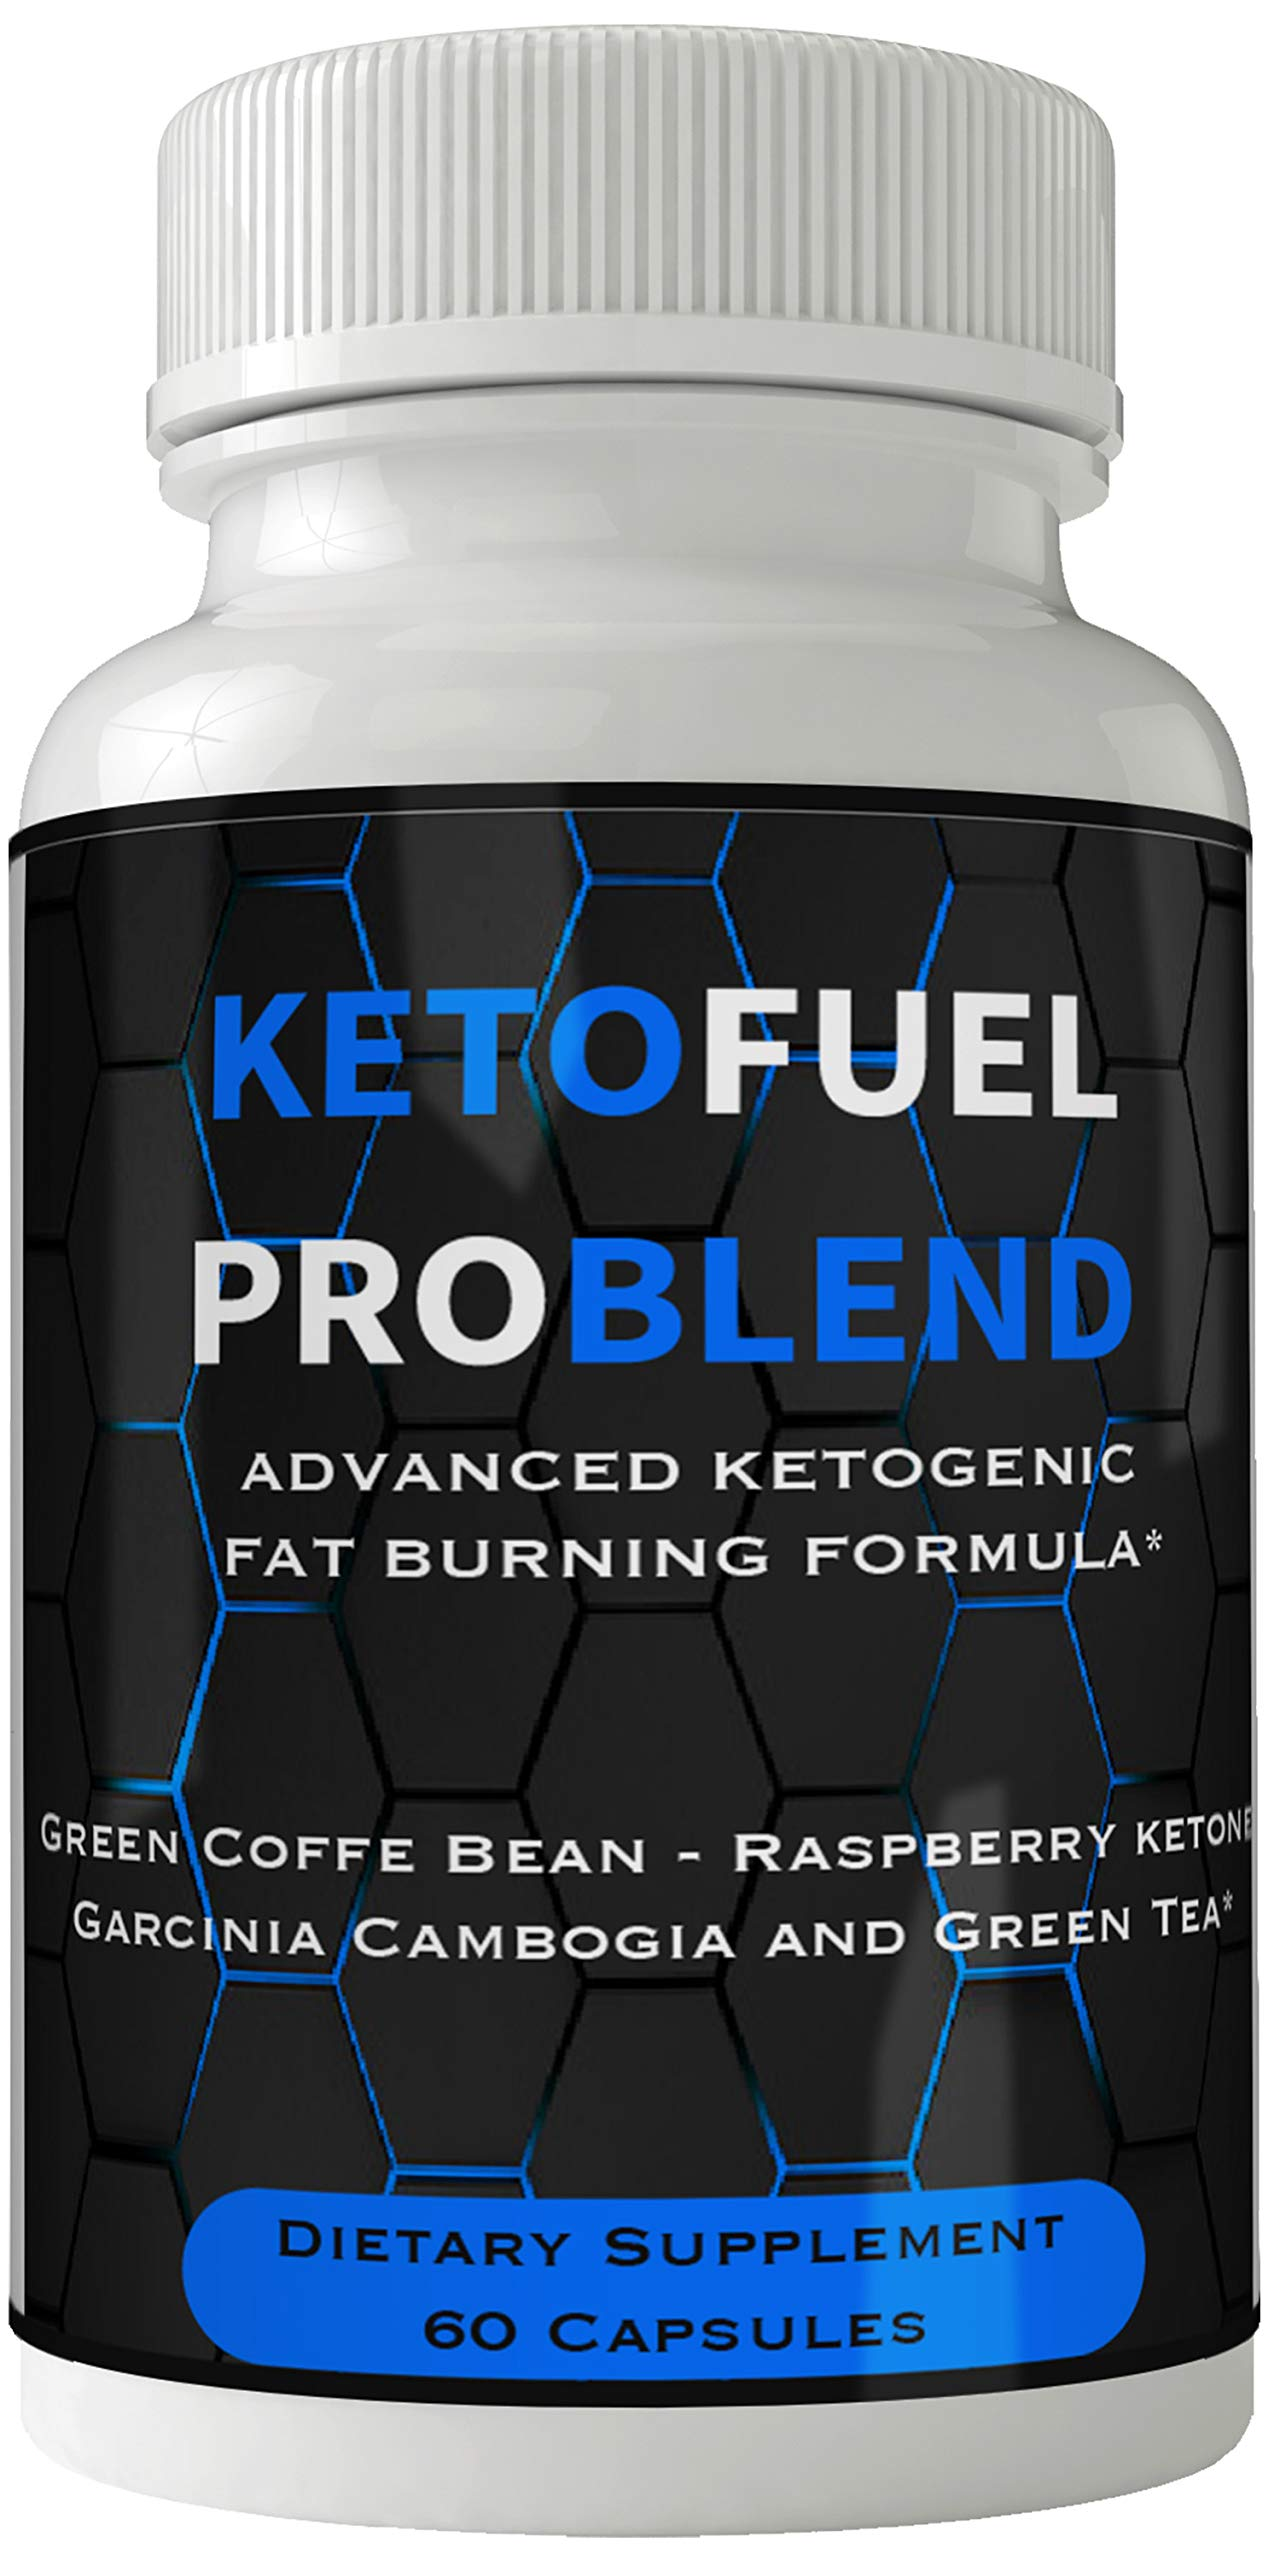 Keto Fuel Pills | Keto Fuel Weight Loss Pills | Keto Fuel Supplements - Weightloss Lean Fat Burner | Advanced Thermogenic Rapid Fat Loss Supplement for Women and Men by nutra4health LLC (Image #1)